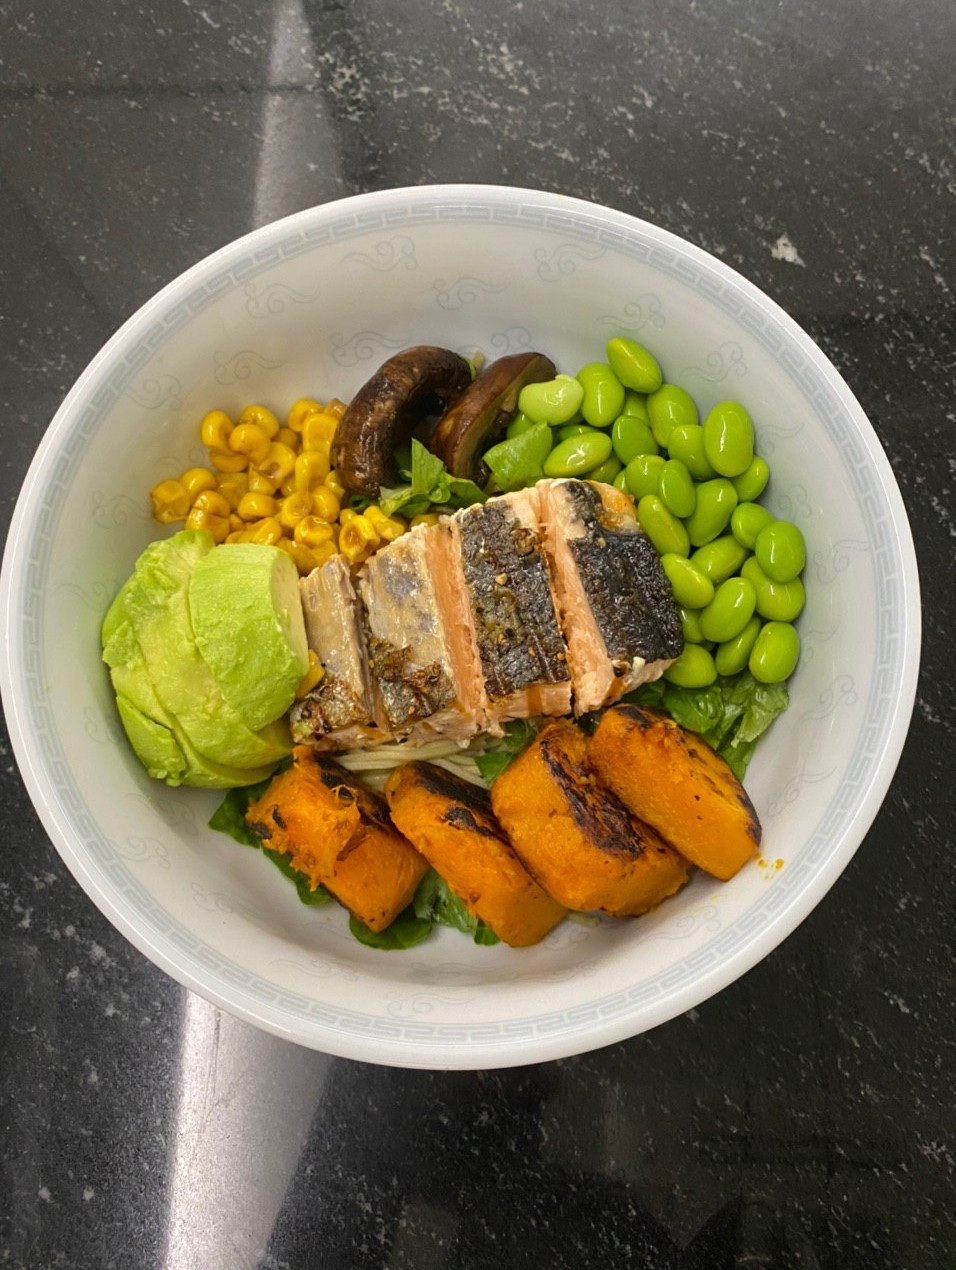 Orthorexia nervosa recovery - Balanced meal